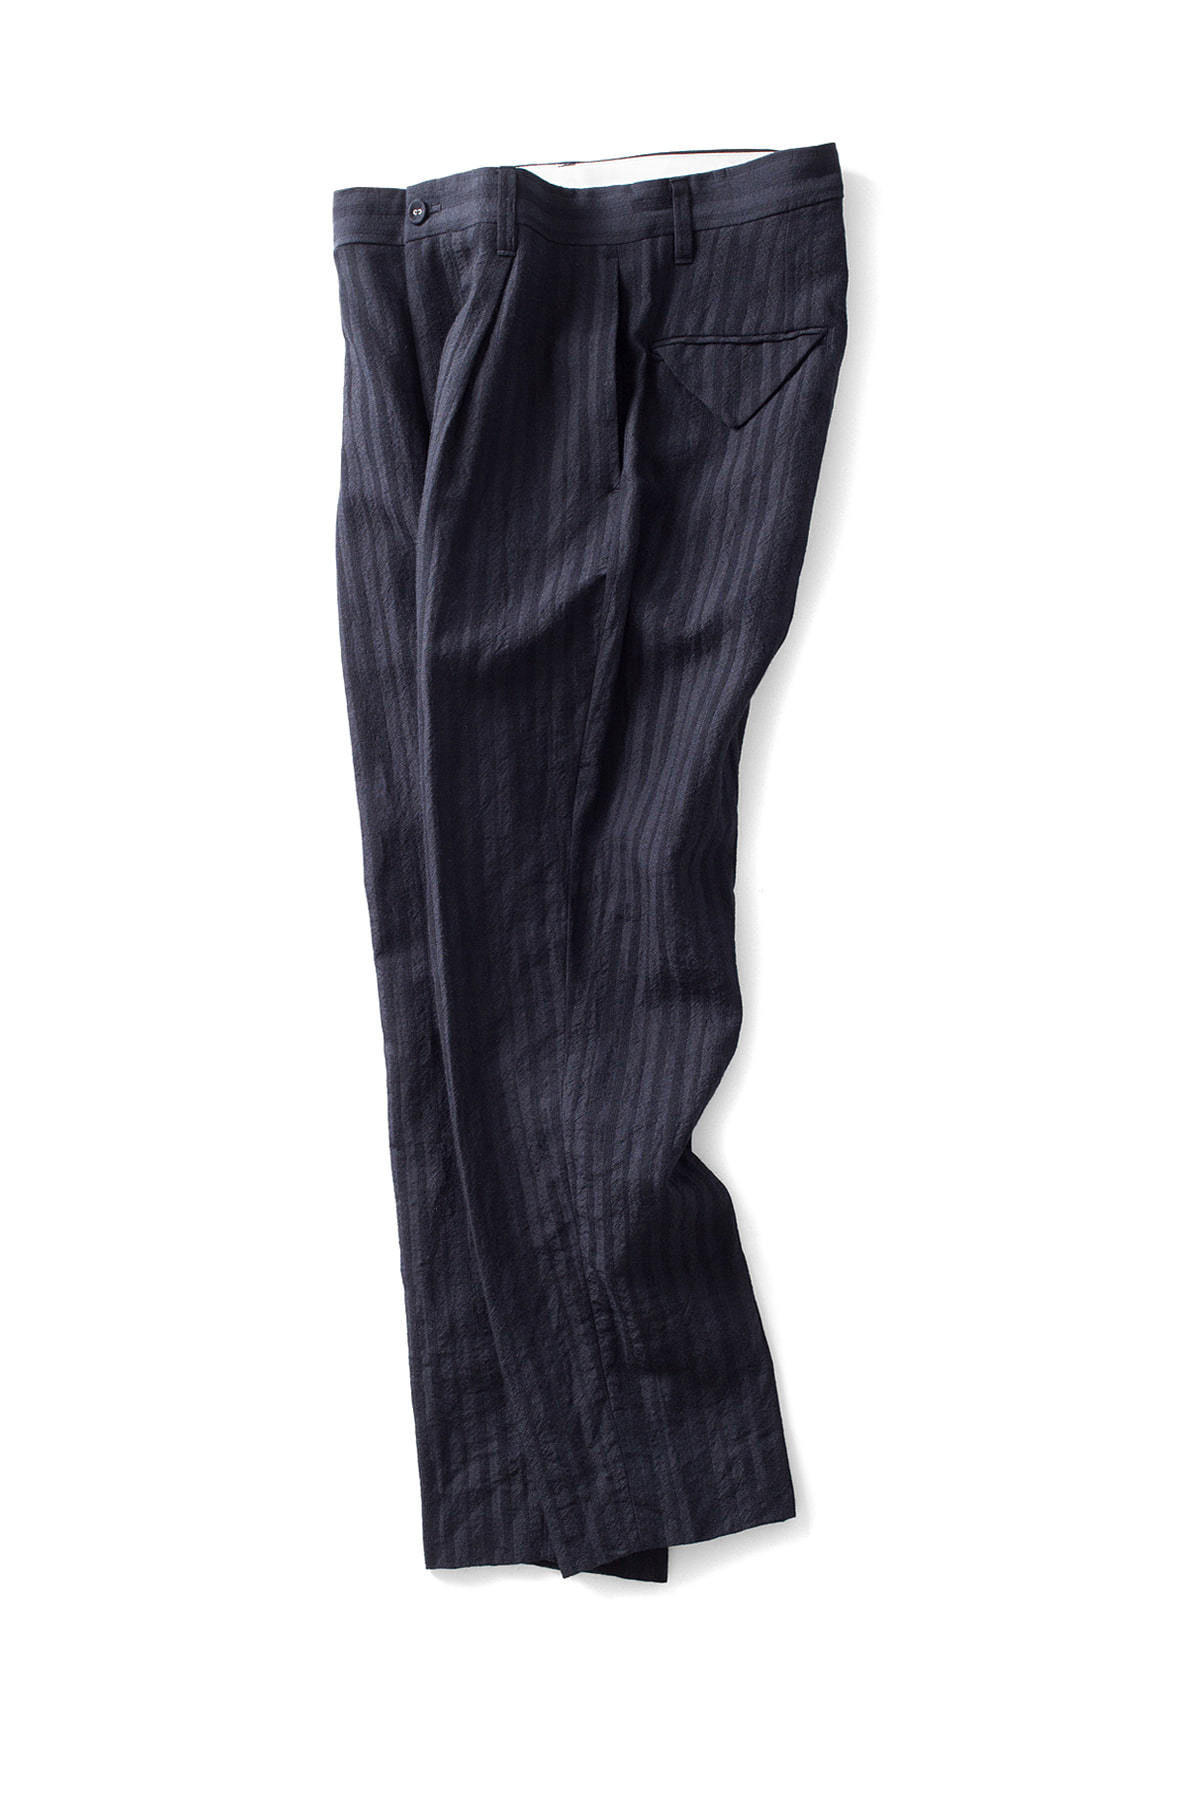 EEL : Shownen Pants (Navy Stripe)